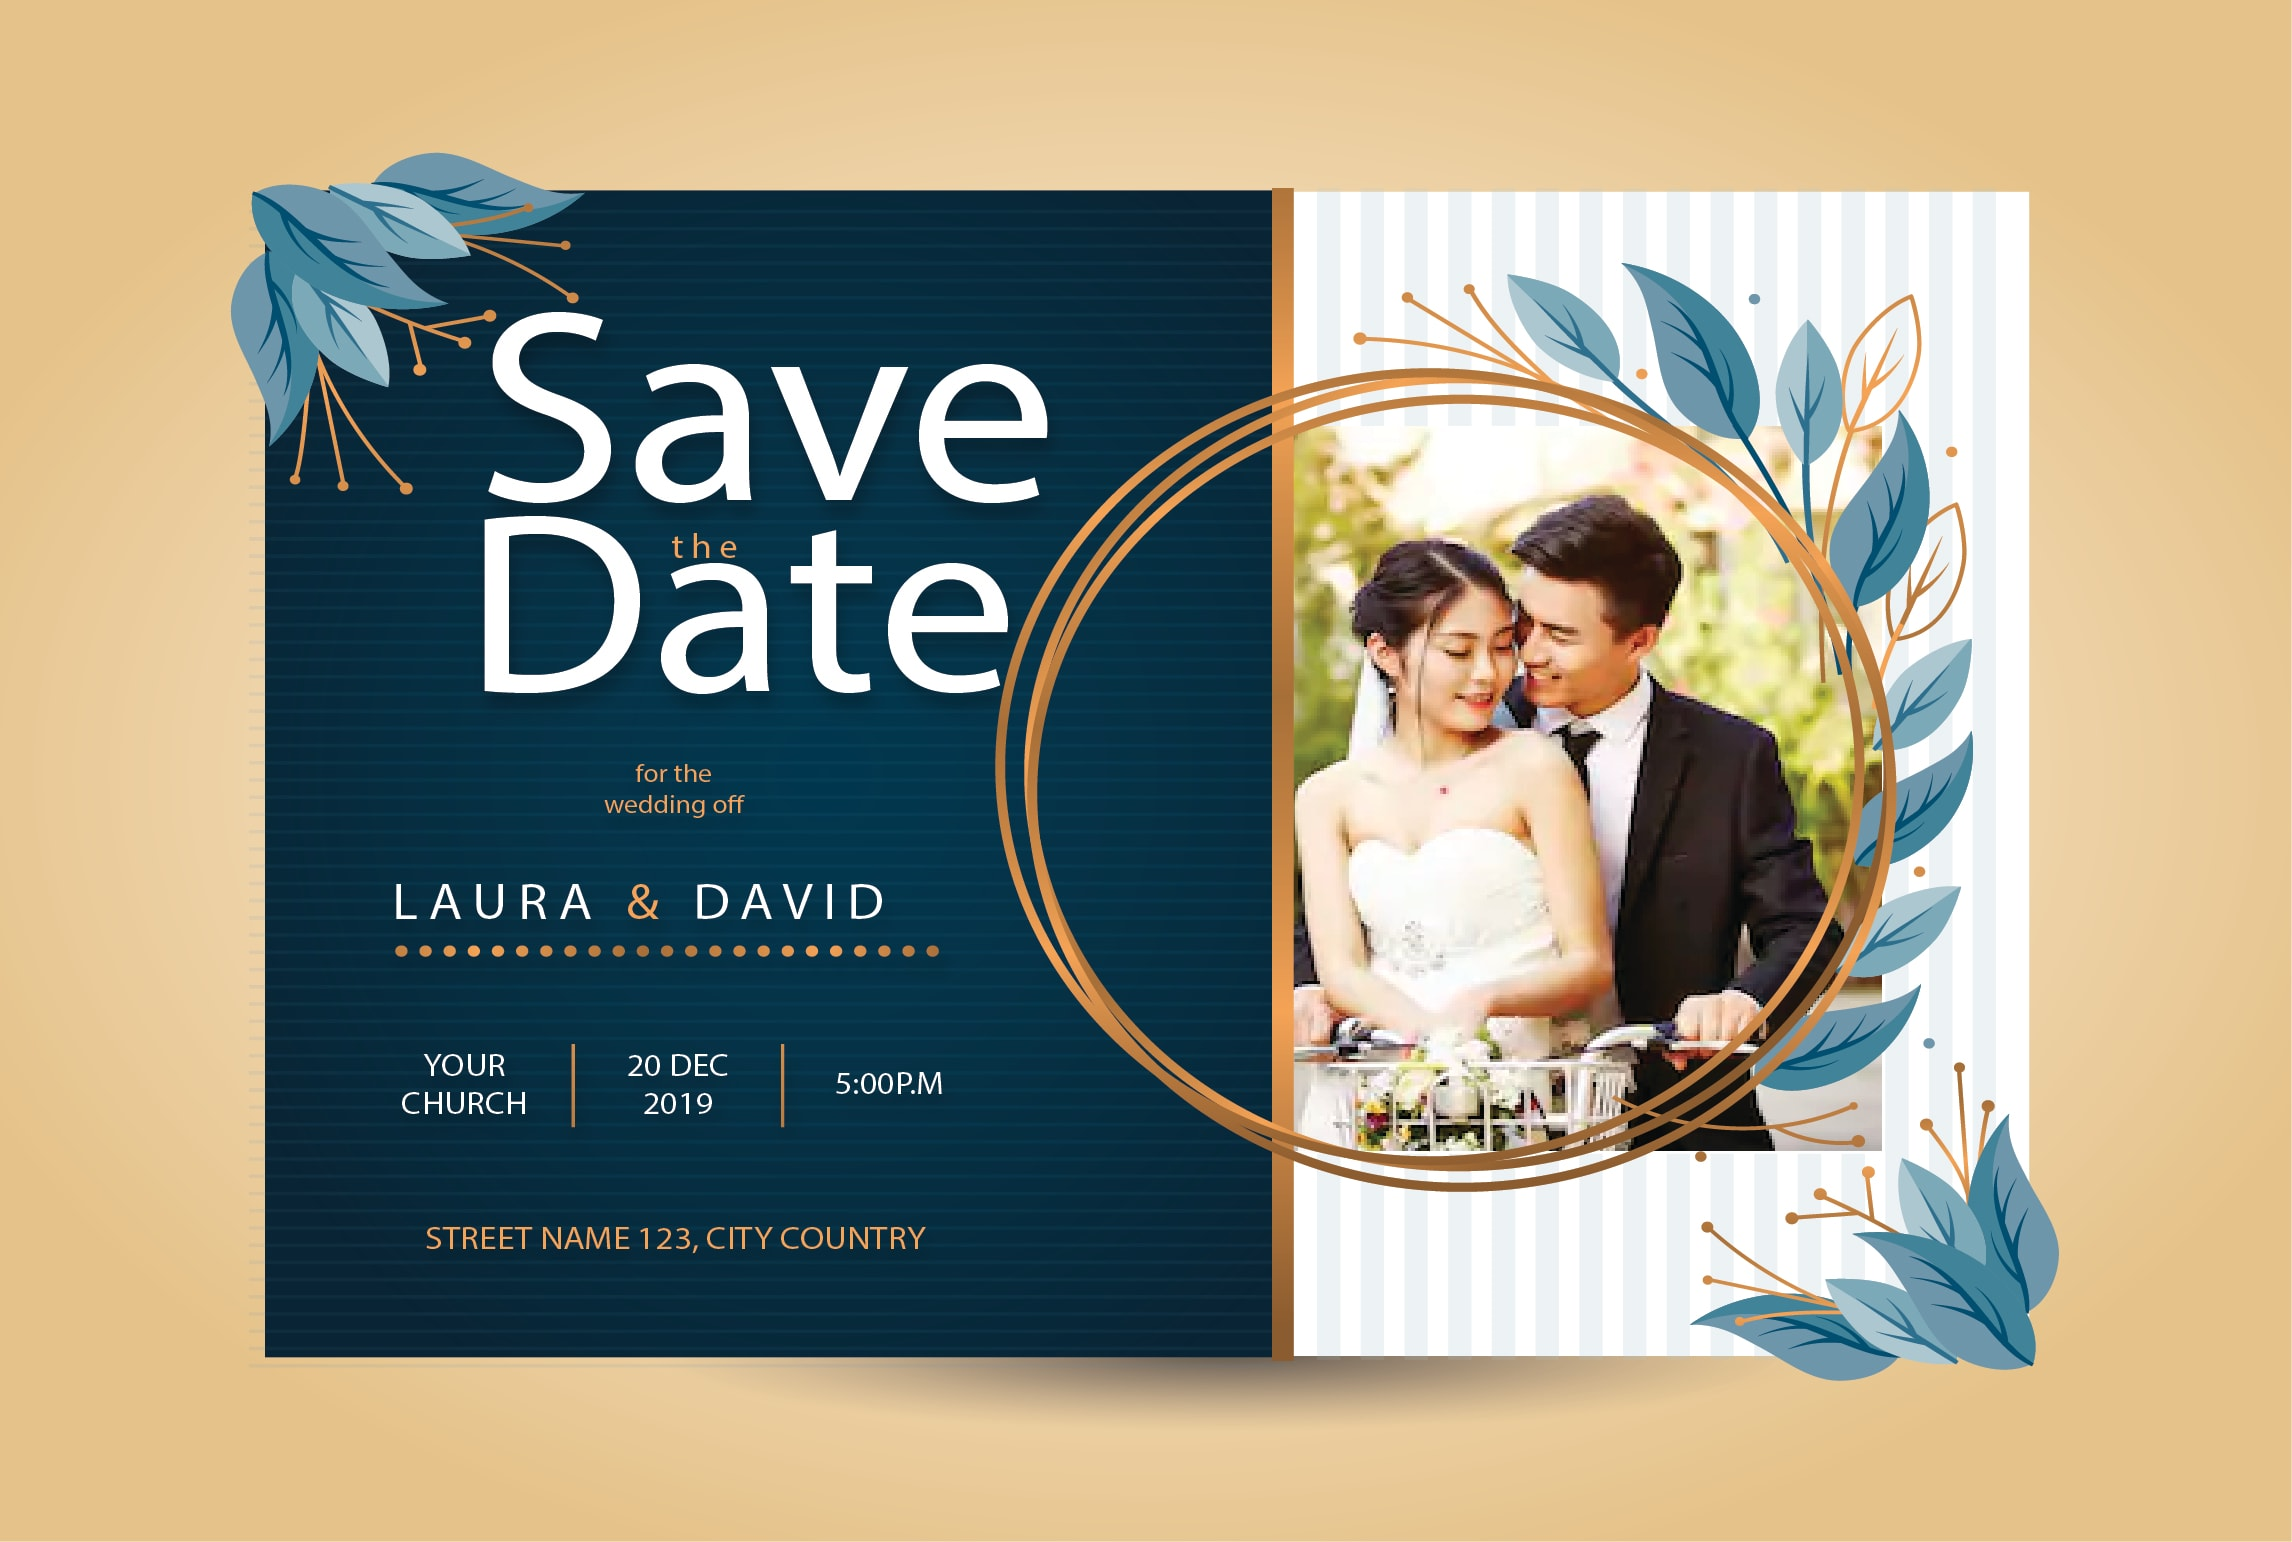 Design very creative wedding cards invitation for you by Ayesha_a | Fiverr